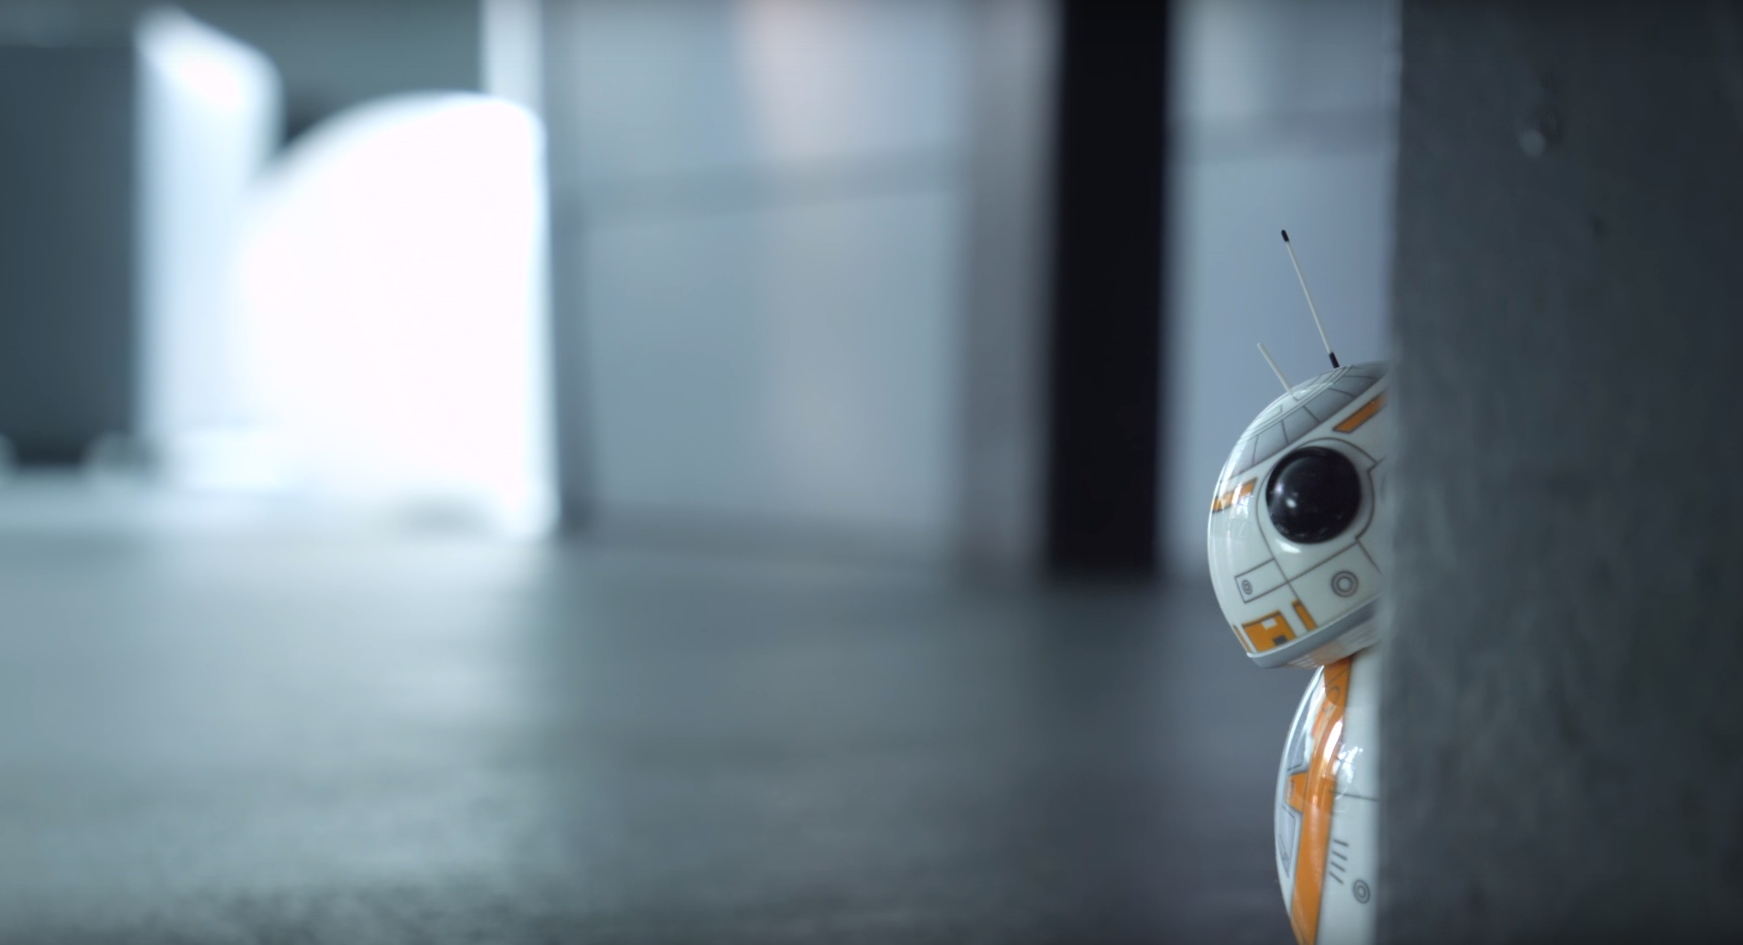 Wellbots - Featuring the BB-8 Droid by Sphero